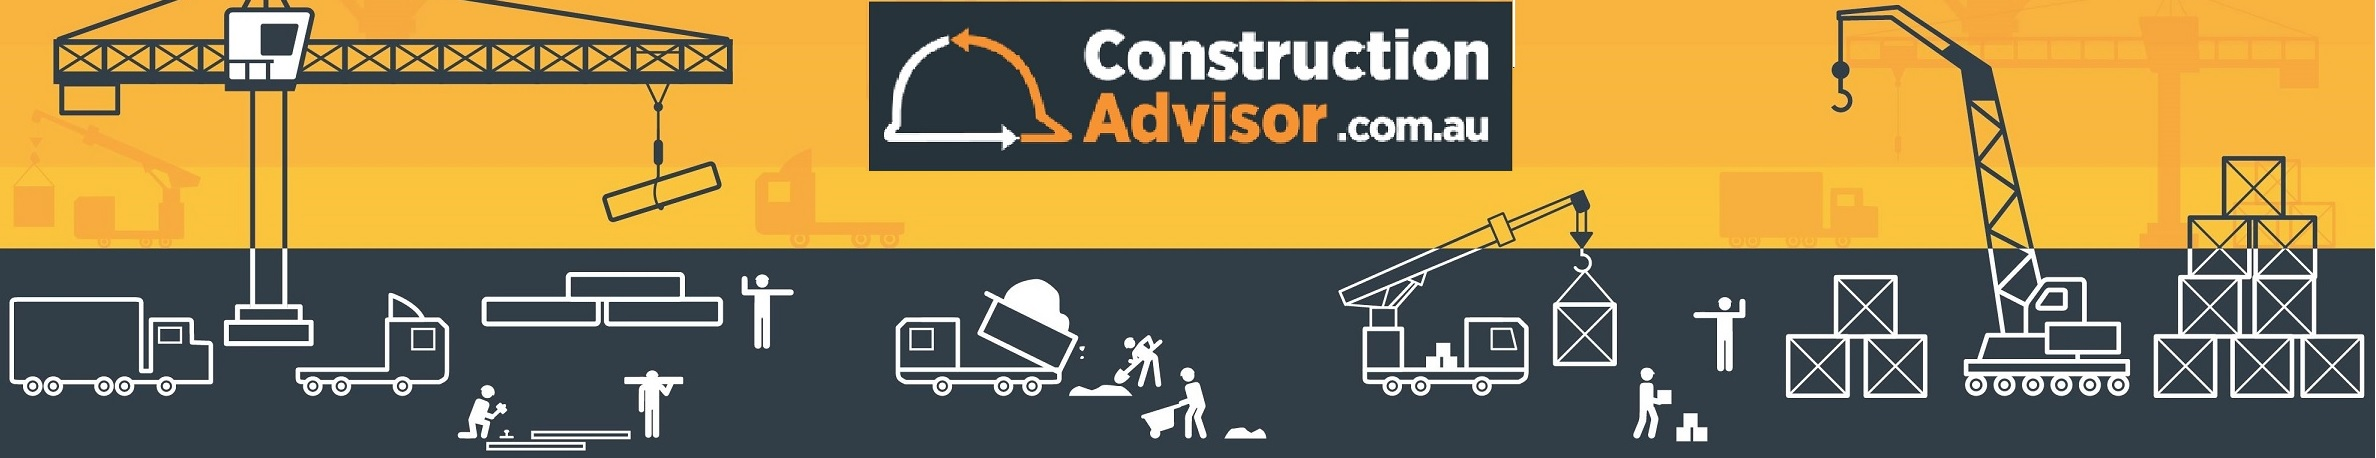 Construction Advisor